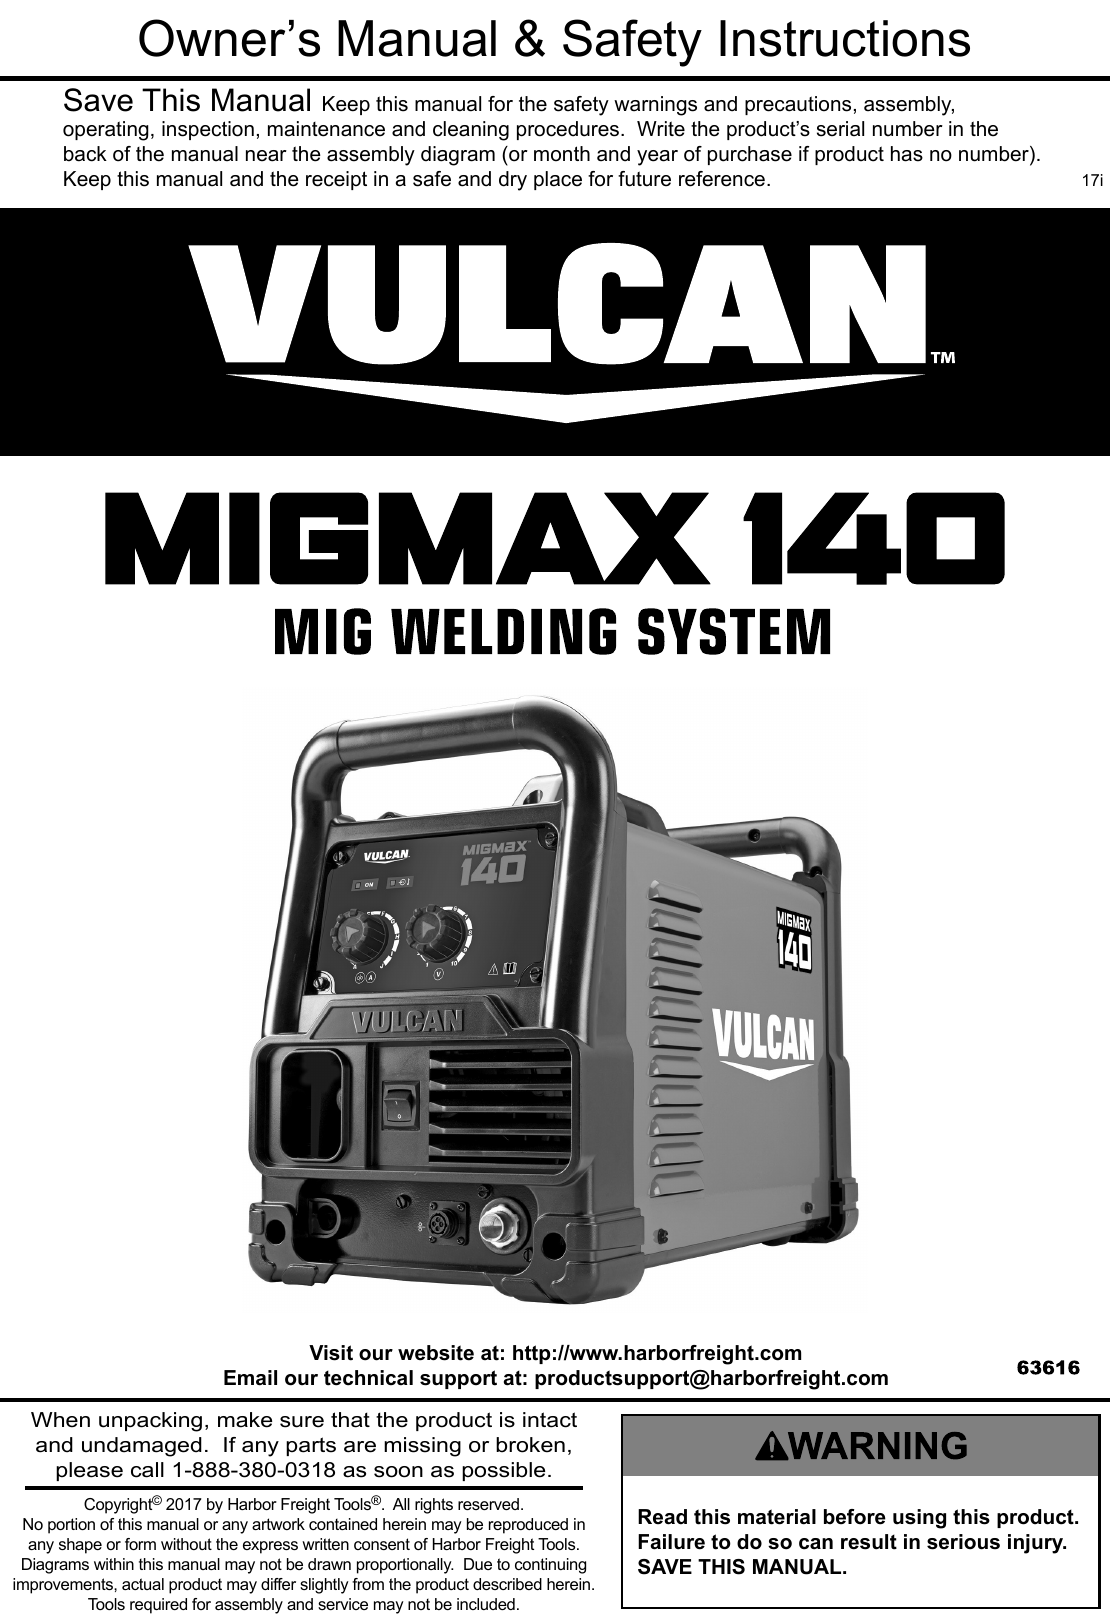 Manual For The 63616 Migmax 140 Welder With 120 Volt Input Diagram As Well Mig Welding Machine On Arc Wiring